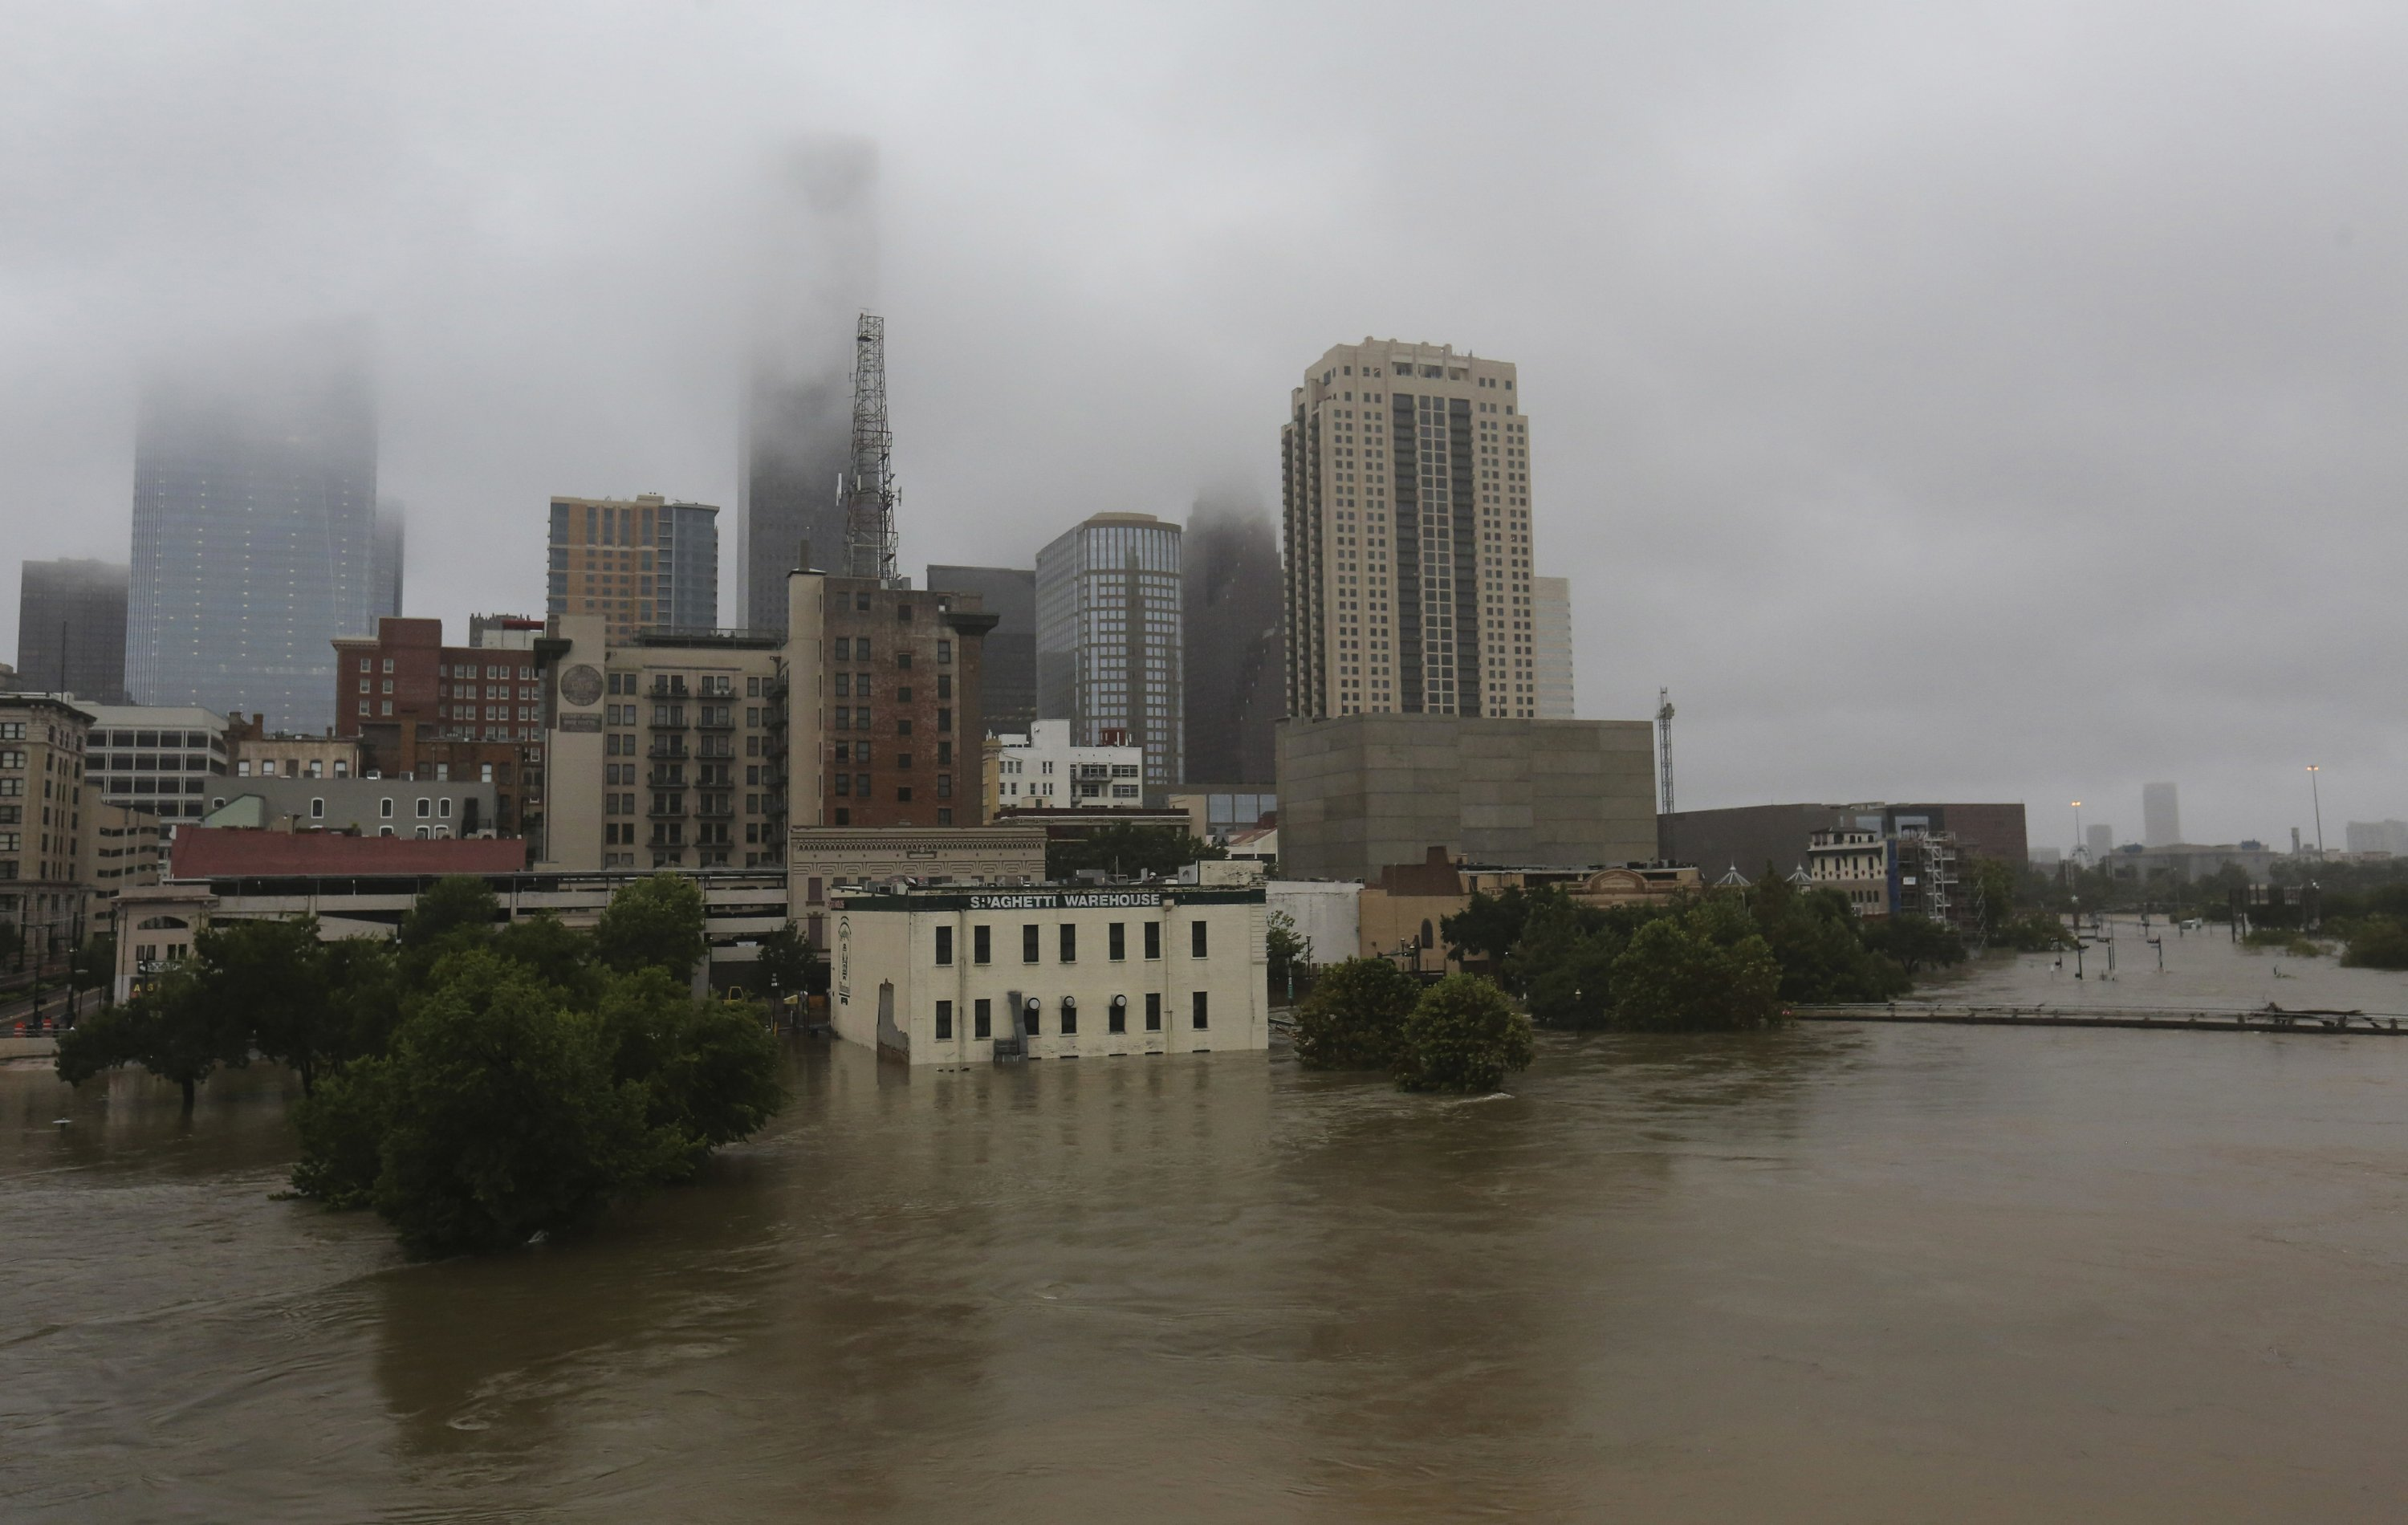 Houston skyscrapers may have worsened Hurricane Harvey rain